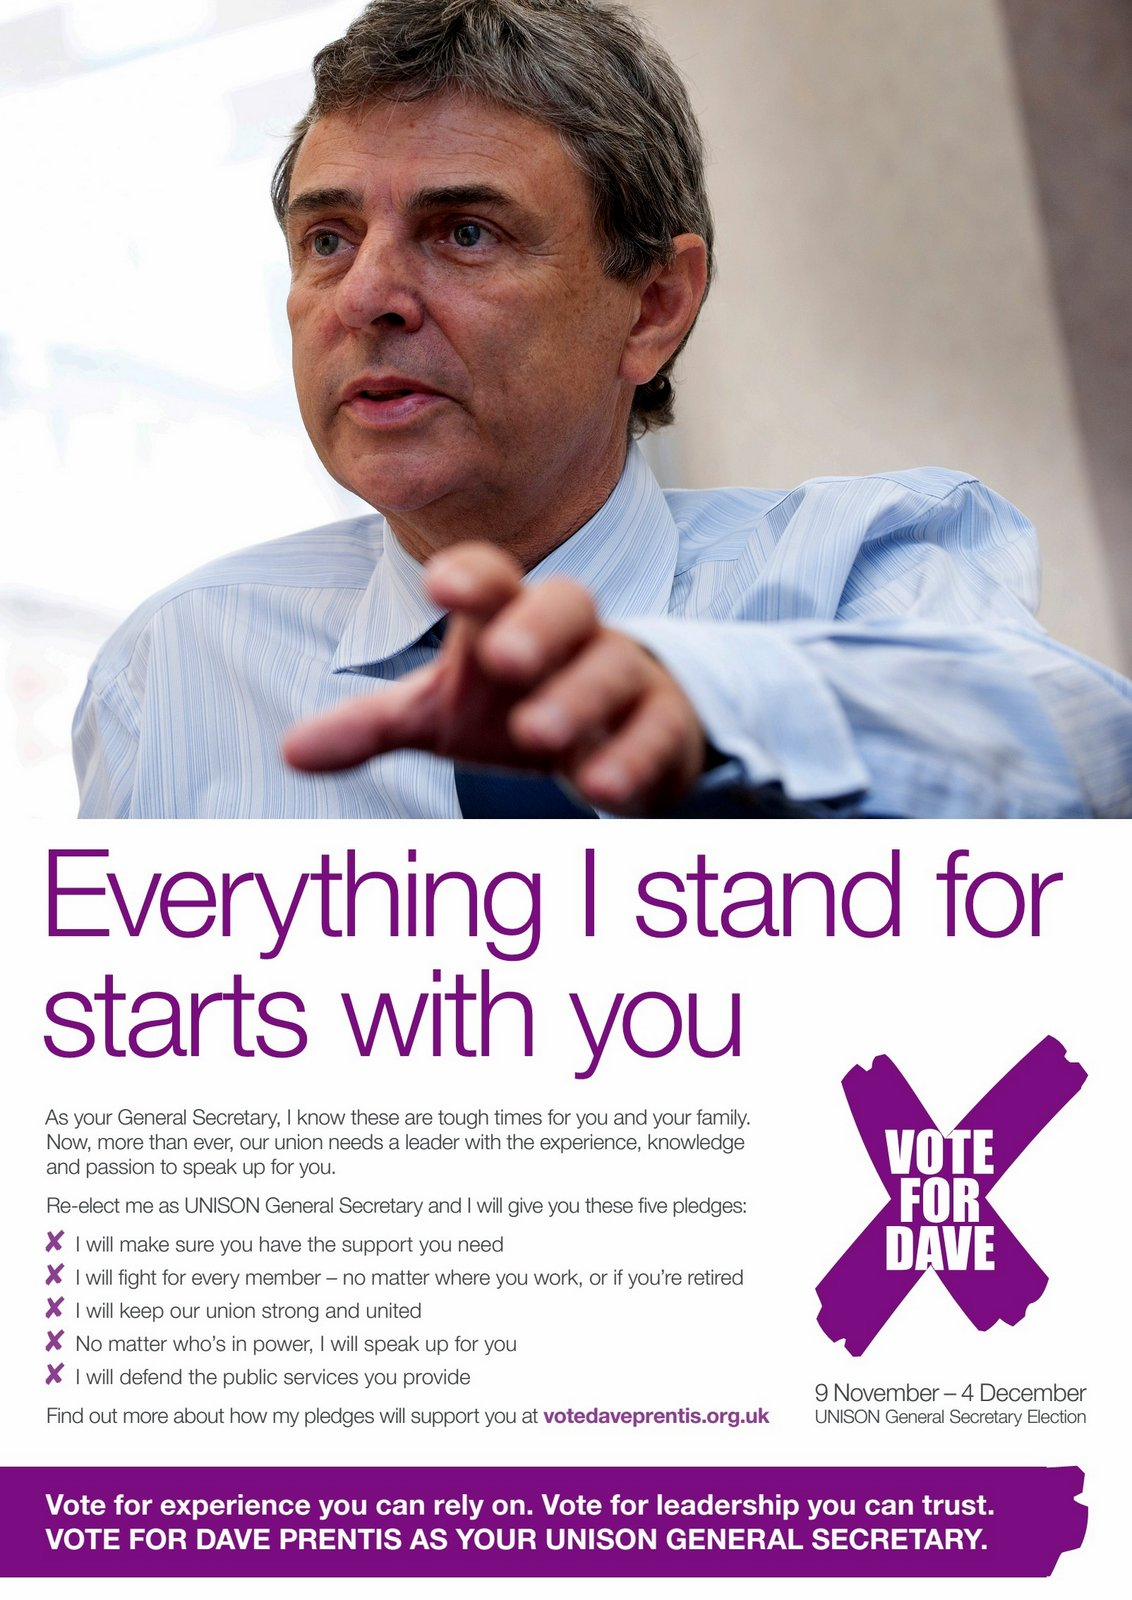 Vote Dave Prentis for UNISON General Secretary